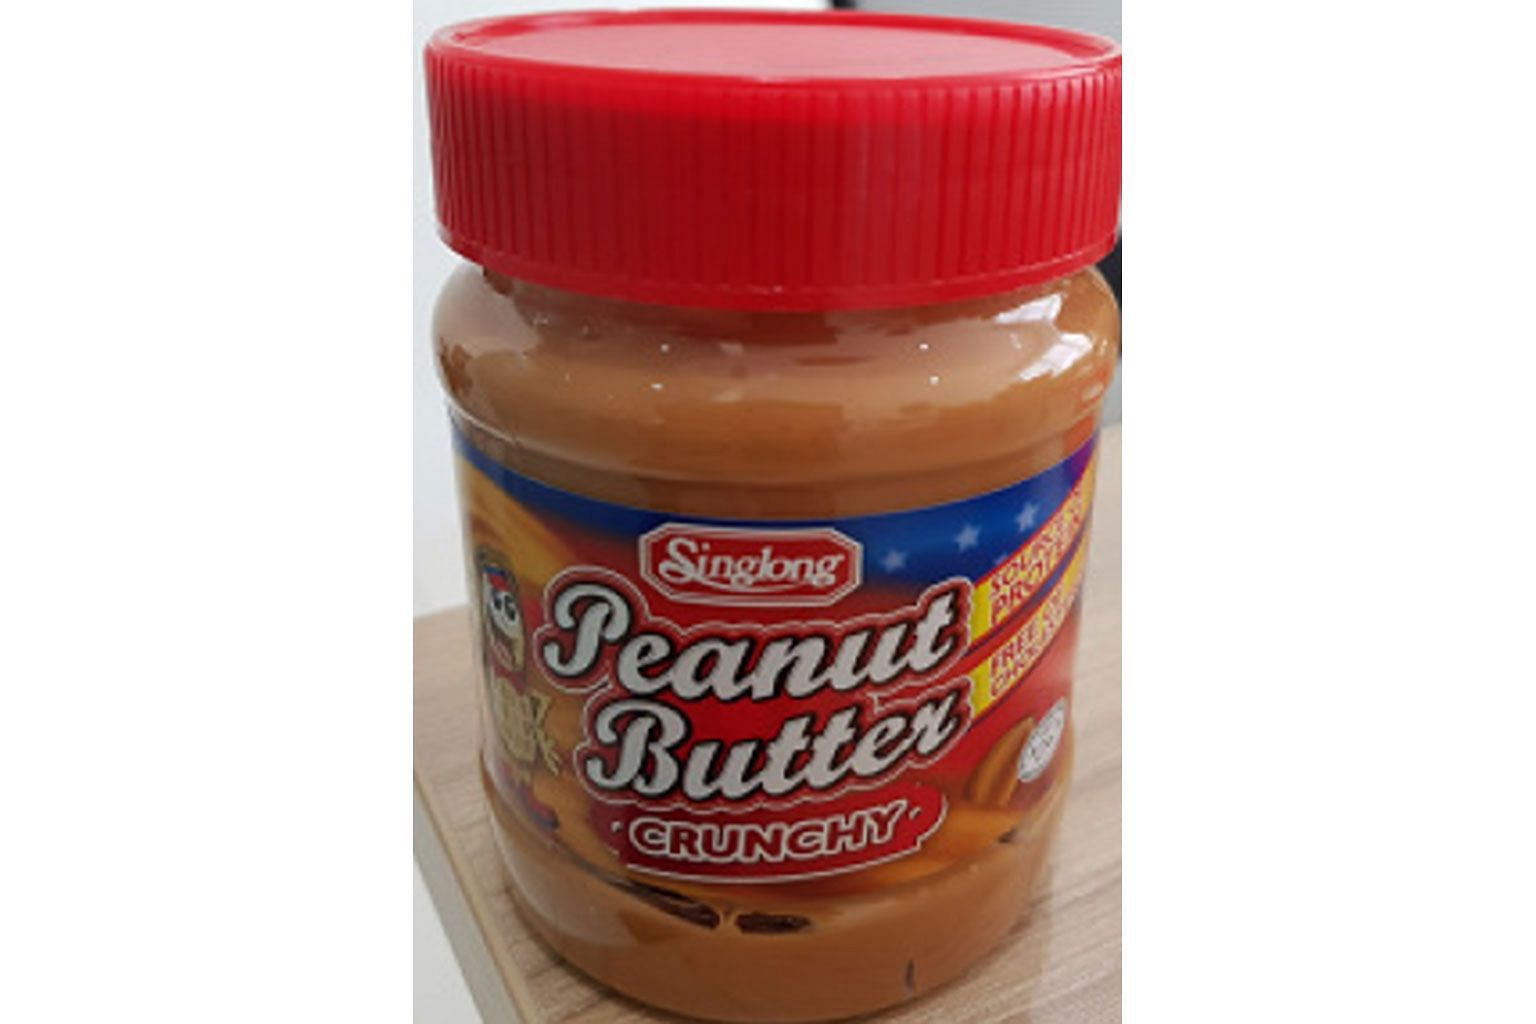 After a metal screw was found in a bottle of peanut butter, the importer recalled the batch as a precautionary measure.